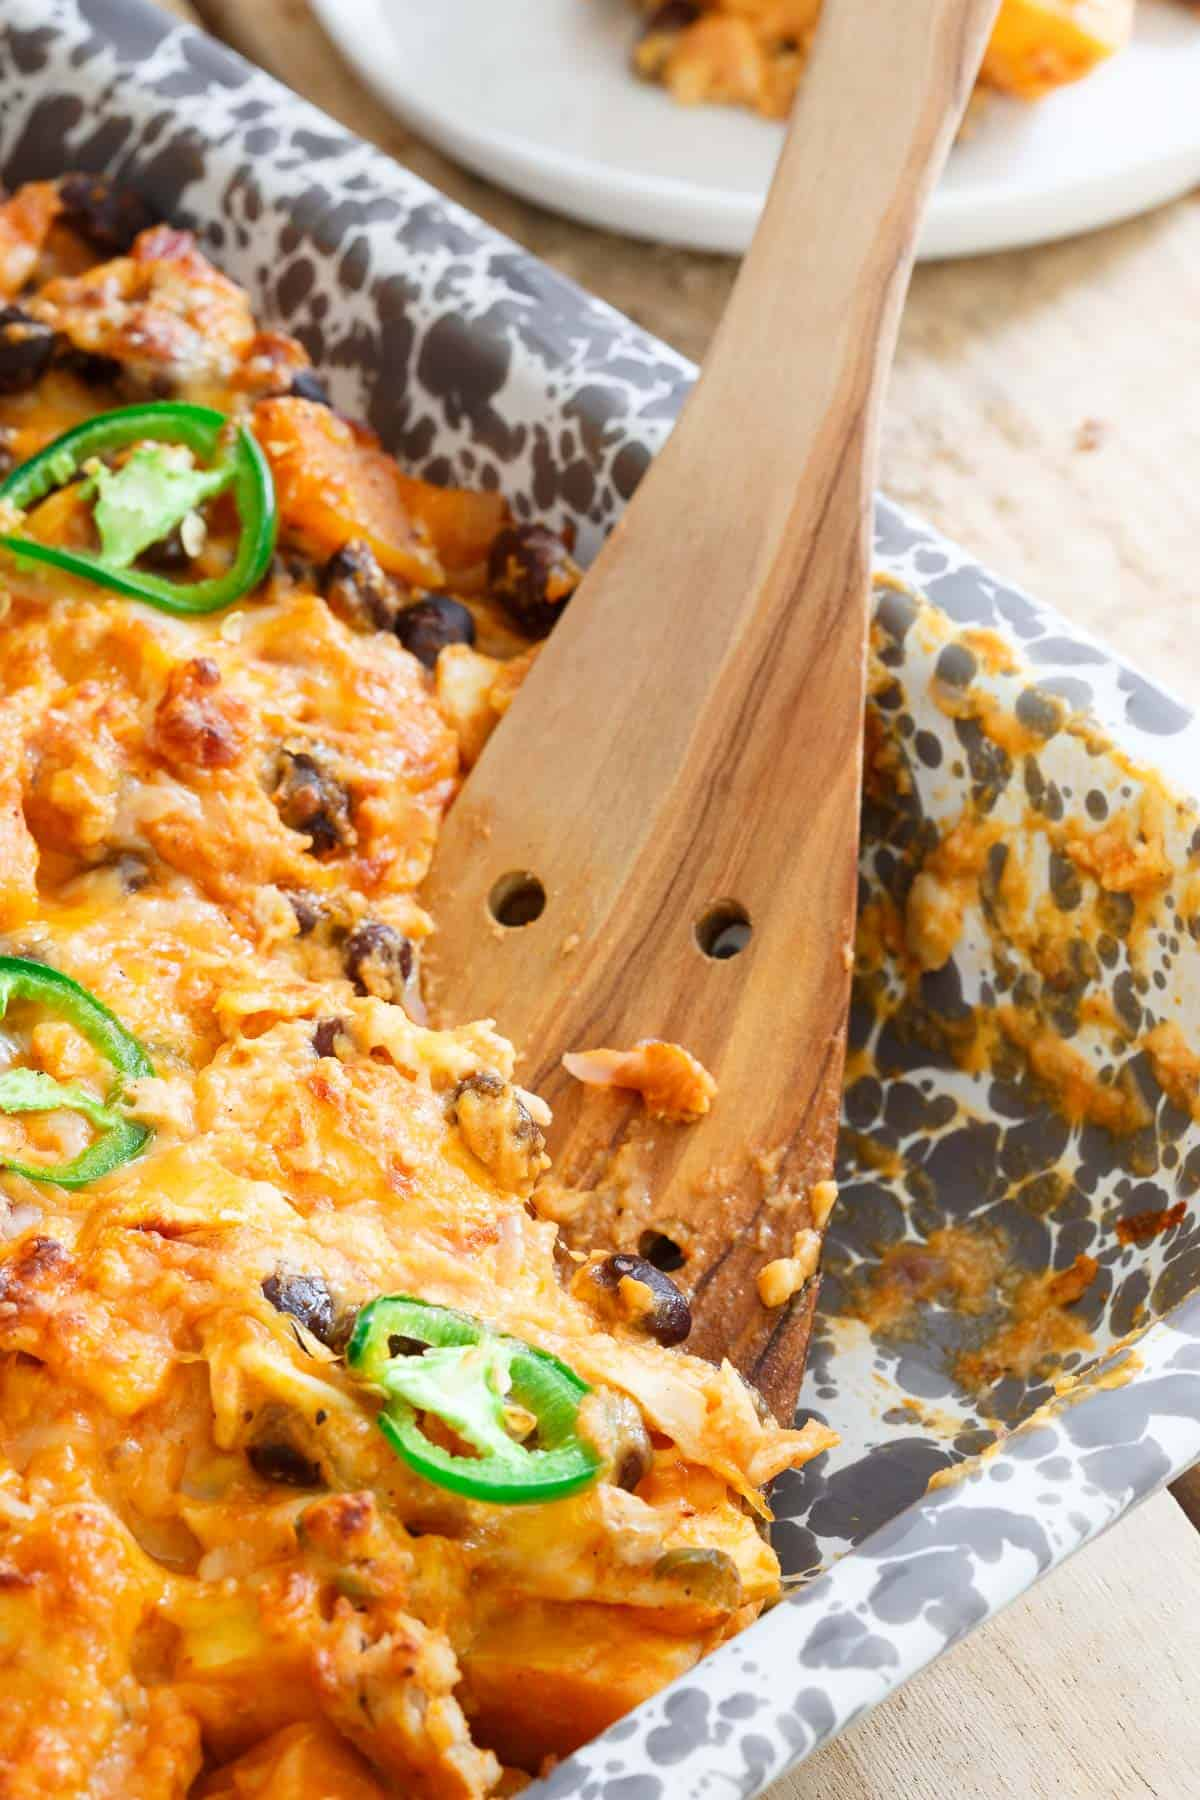 Creamy, cheesy and packed with superfood nutrition, get this gluten free pumpkin tortilla casserole on the table this week!